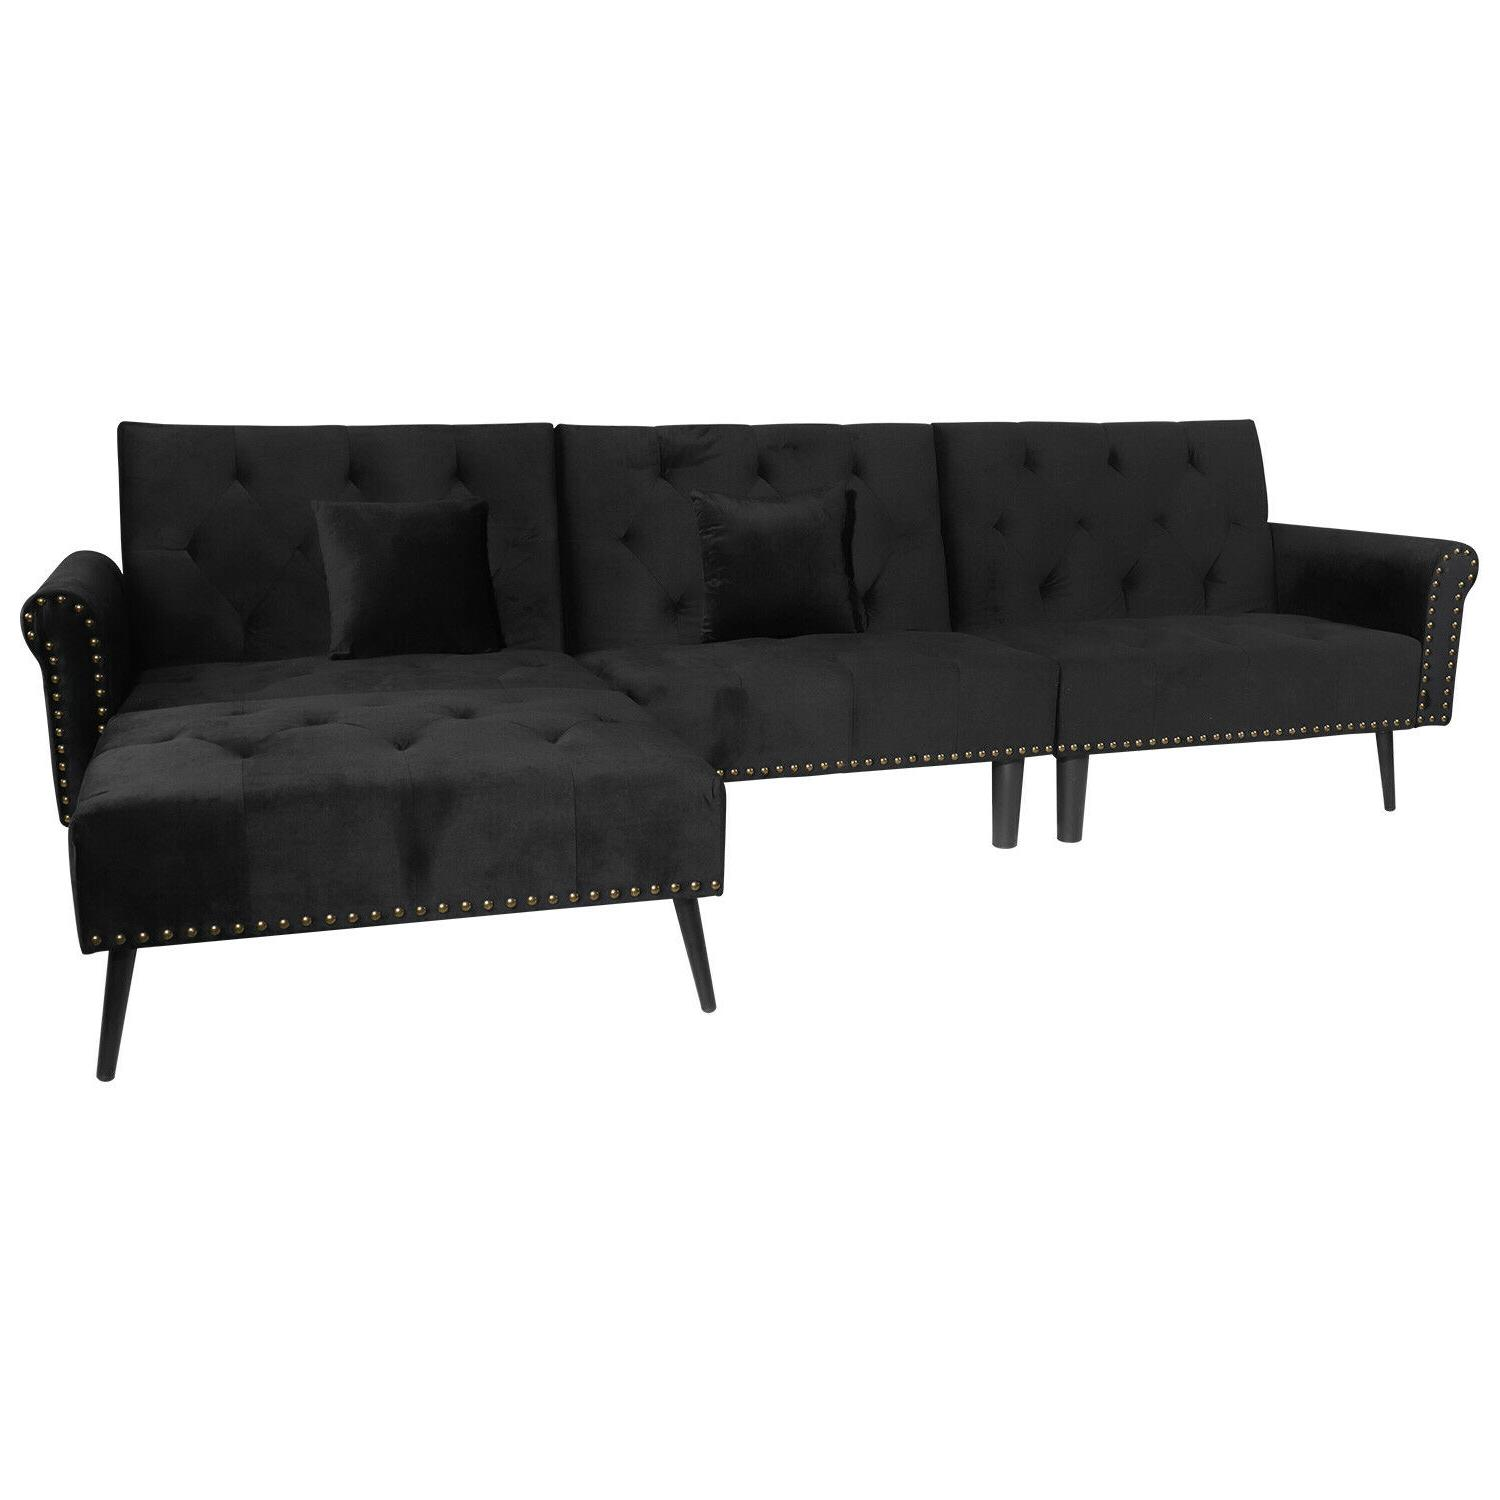 Sectional Sofa 900lb Duty Wide Futon Tufted